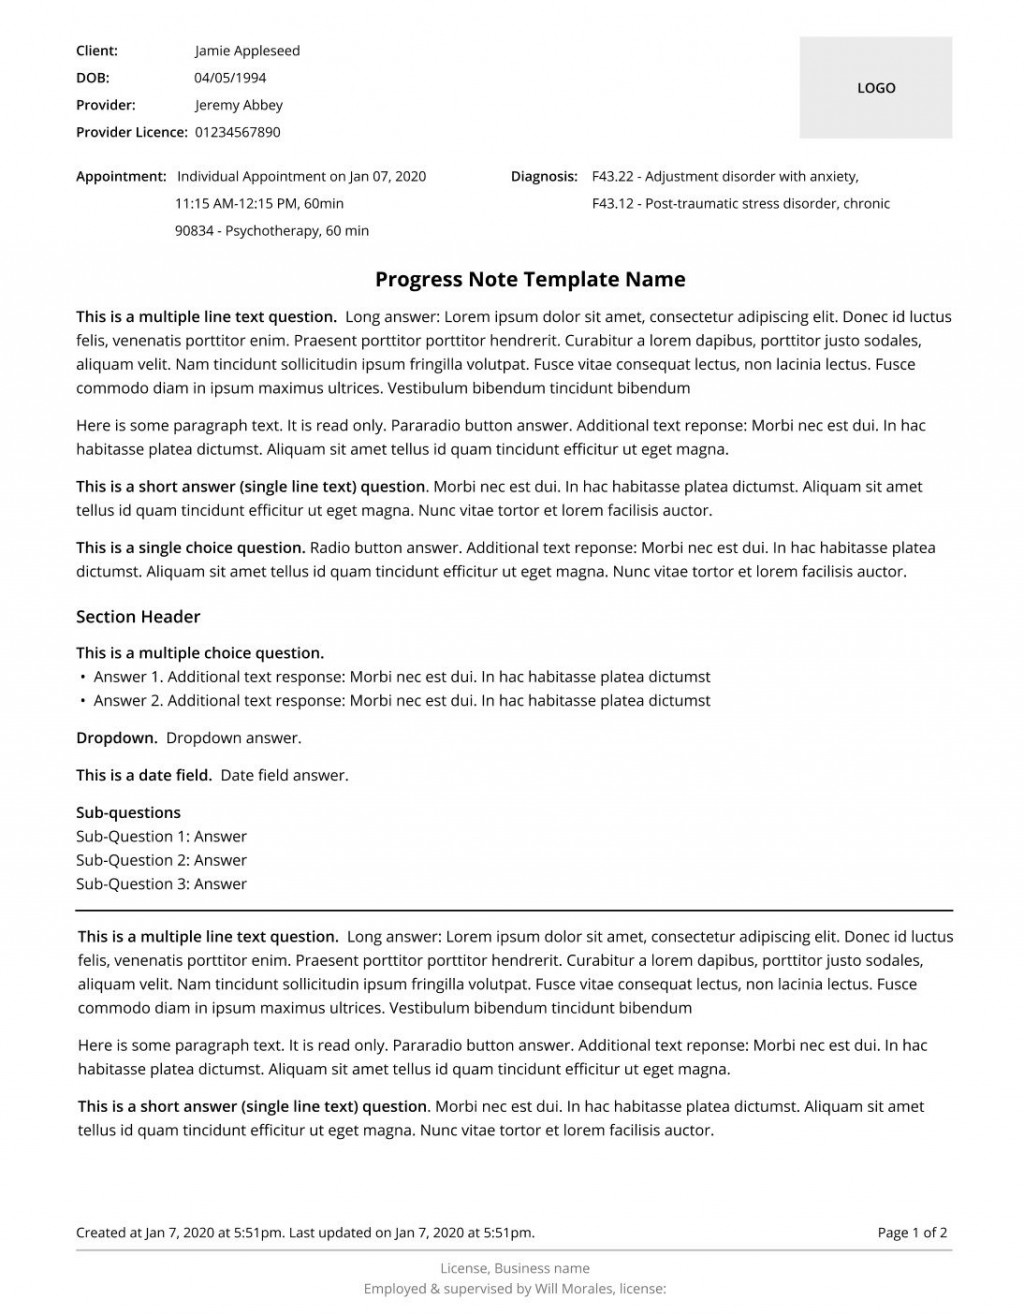 009 Frightening Group Psychotherapy Progres Note Template Image Large